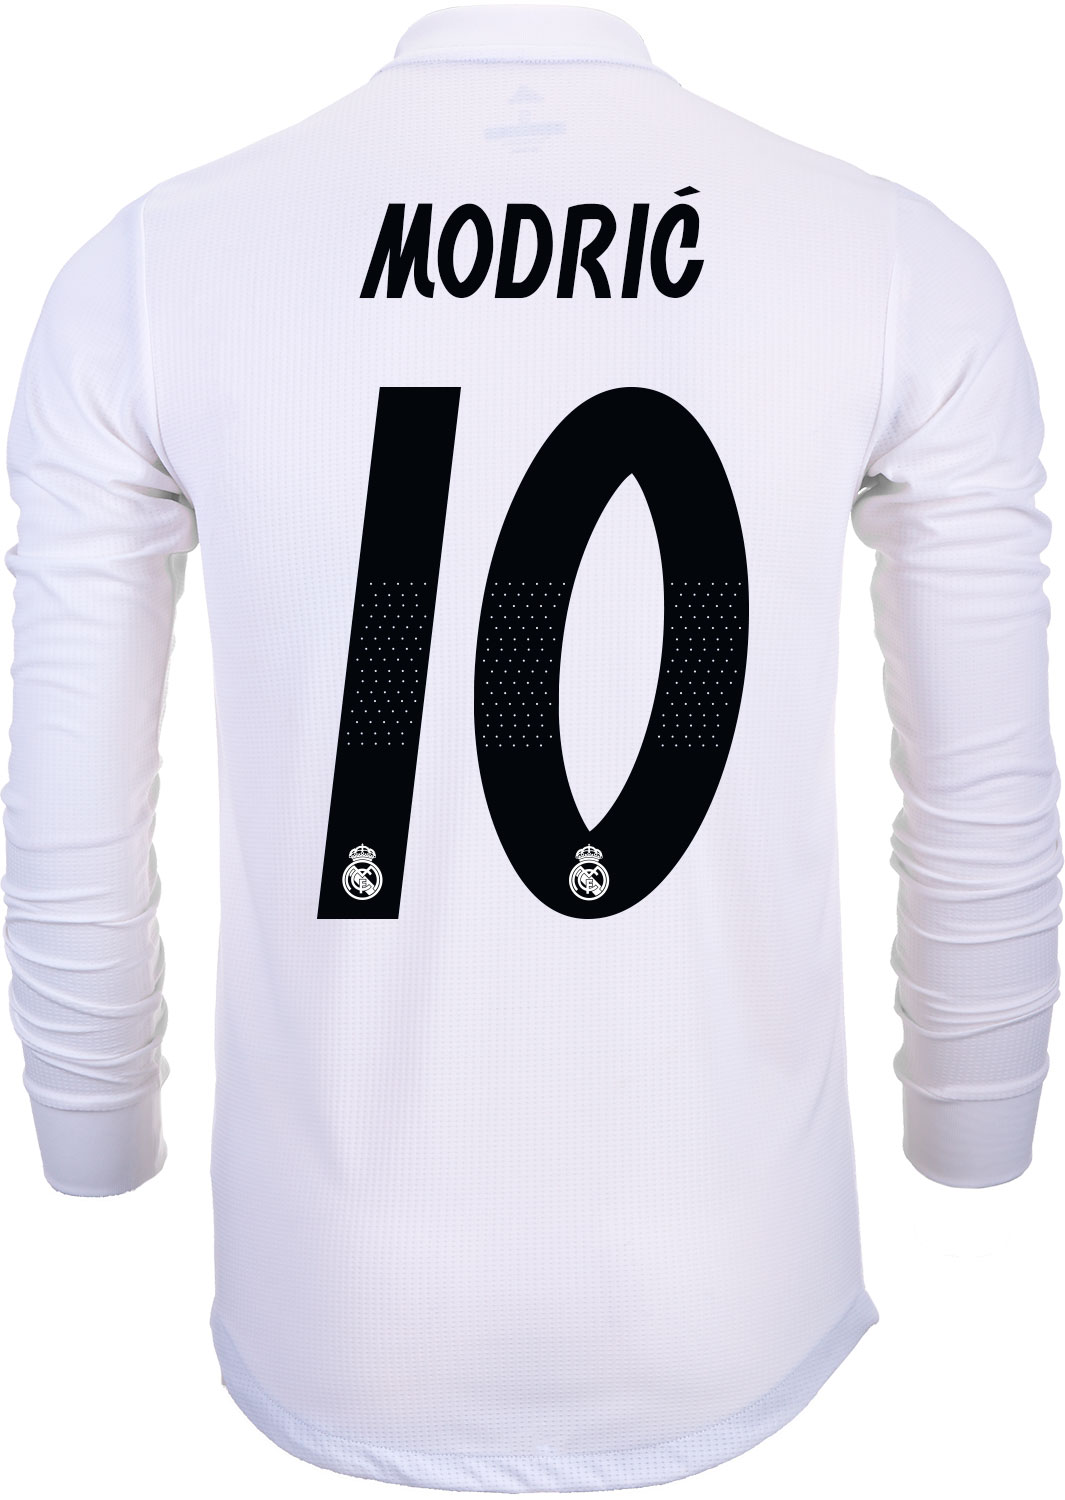 check out a72d7 13b22 2018/19 adidas Kids Luka Modric Real Madrid L/S Home Jersey ...